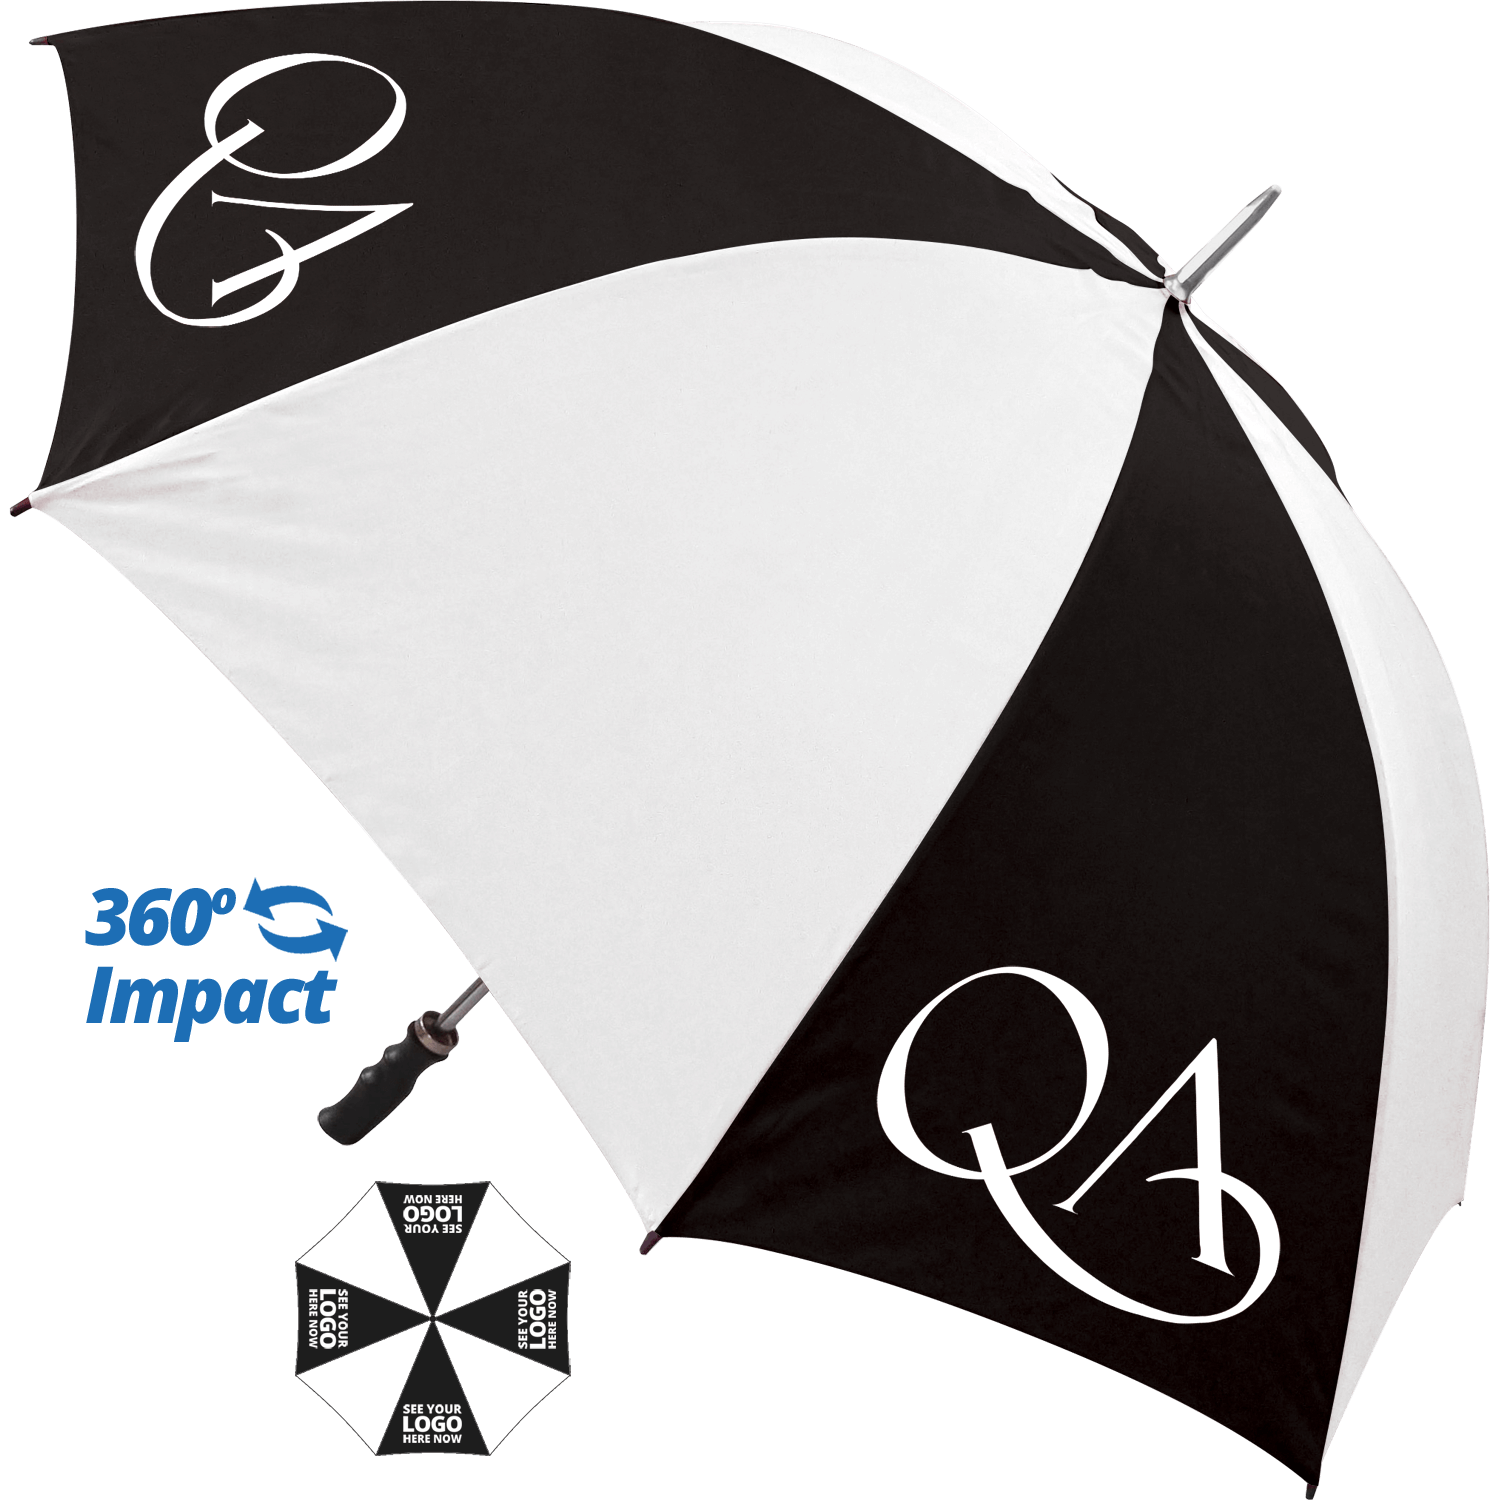 Value Sports Promotional Umbrella - 4 Panel Print